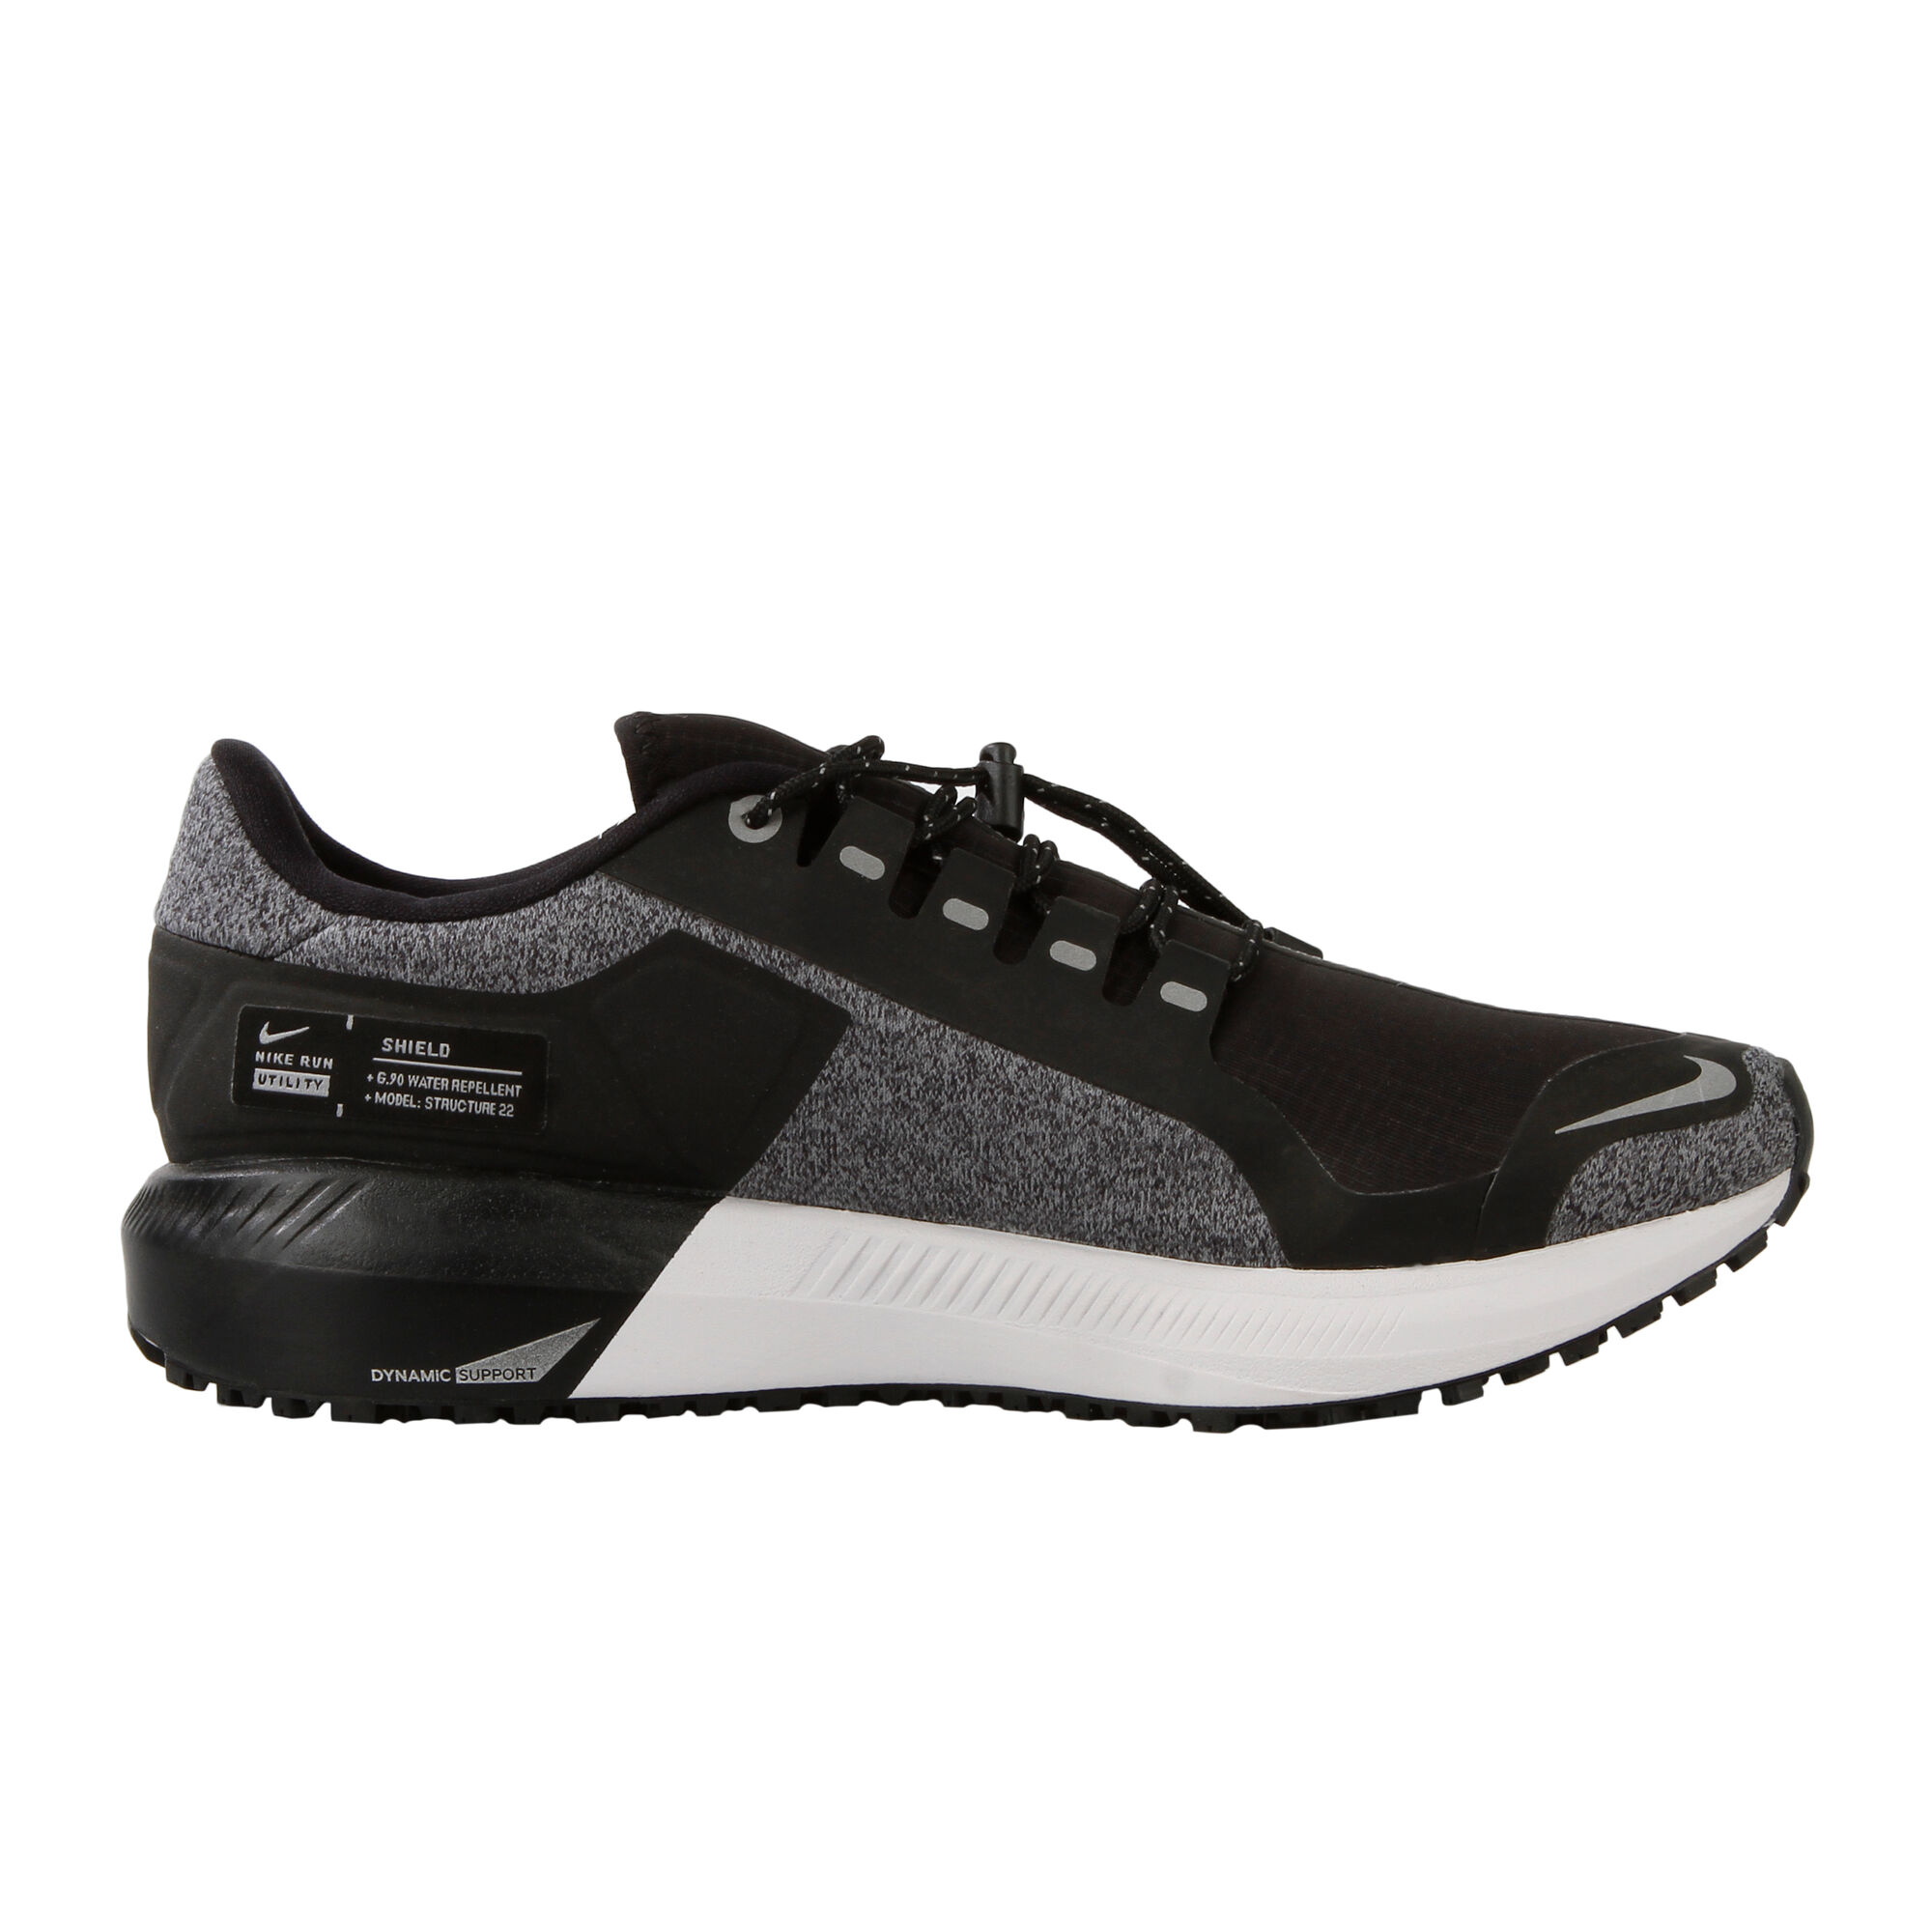 9b4bbad386bf7 Nike  Nike  Nike  Nike  Nike  Nike  Nike  Nike  Nike. Air Zoom Structure 22  Shield Women ...